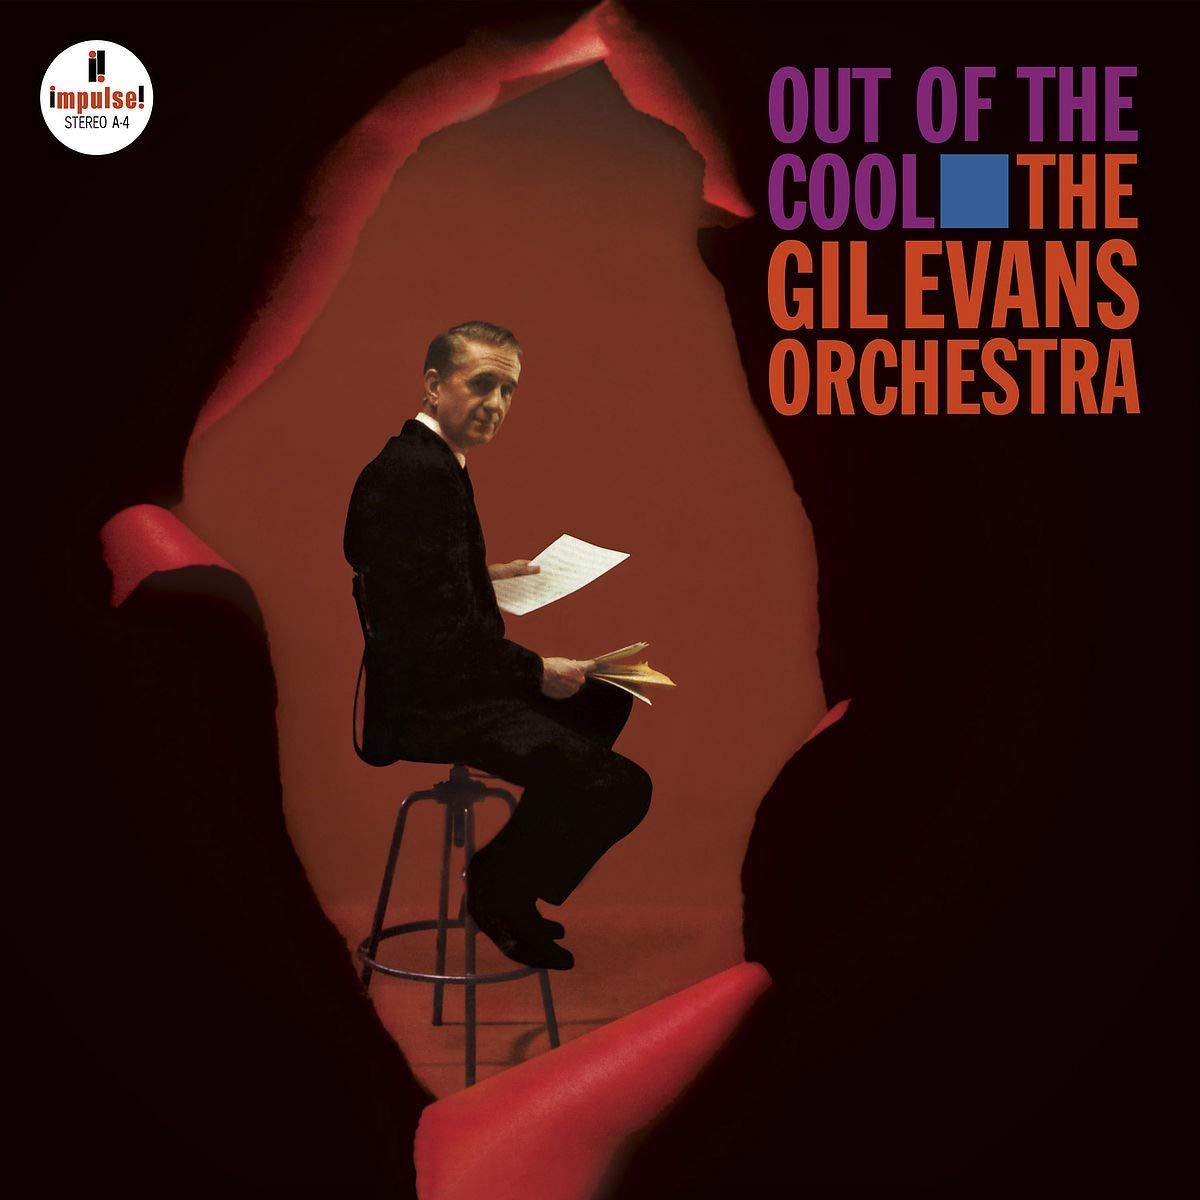 The Gil Evans Orchestra - Out Of The Cool [Import]